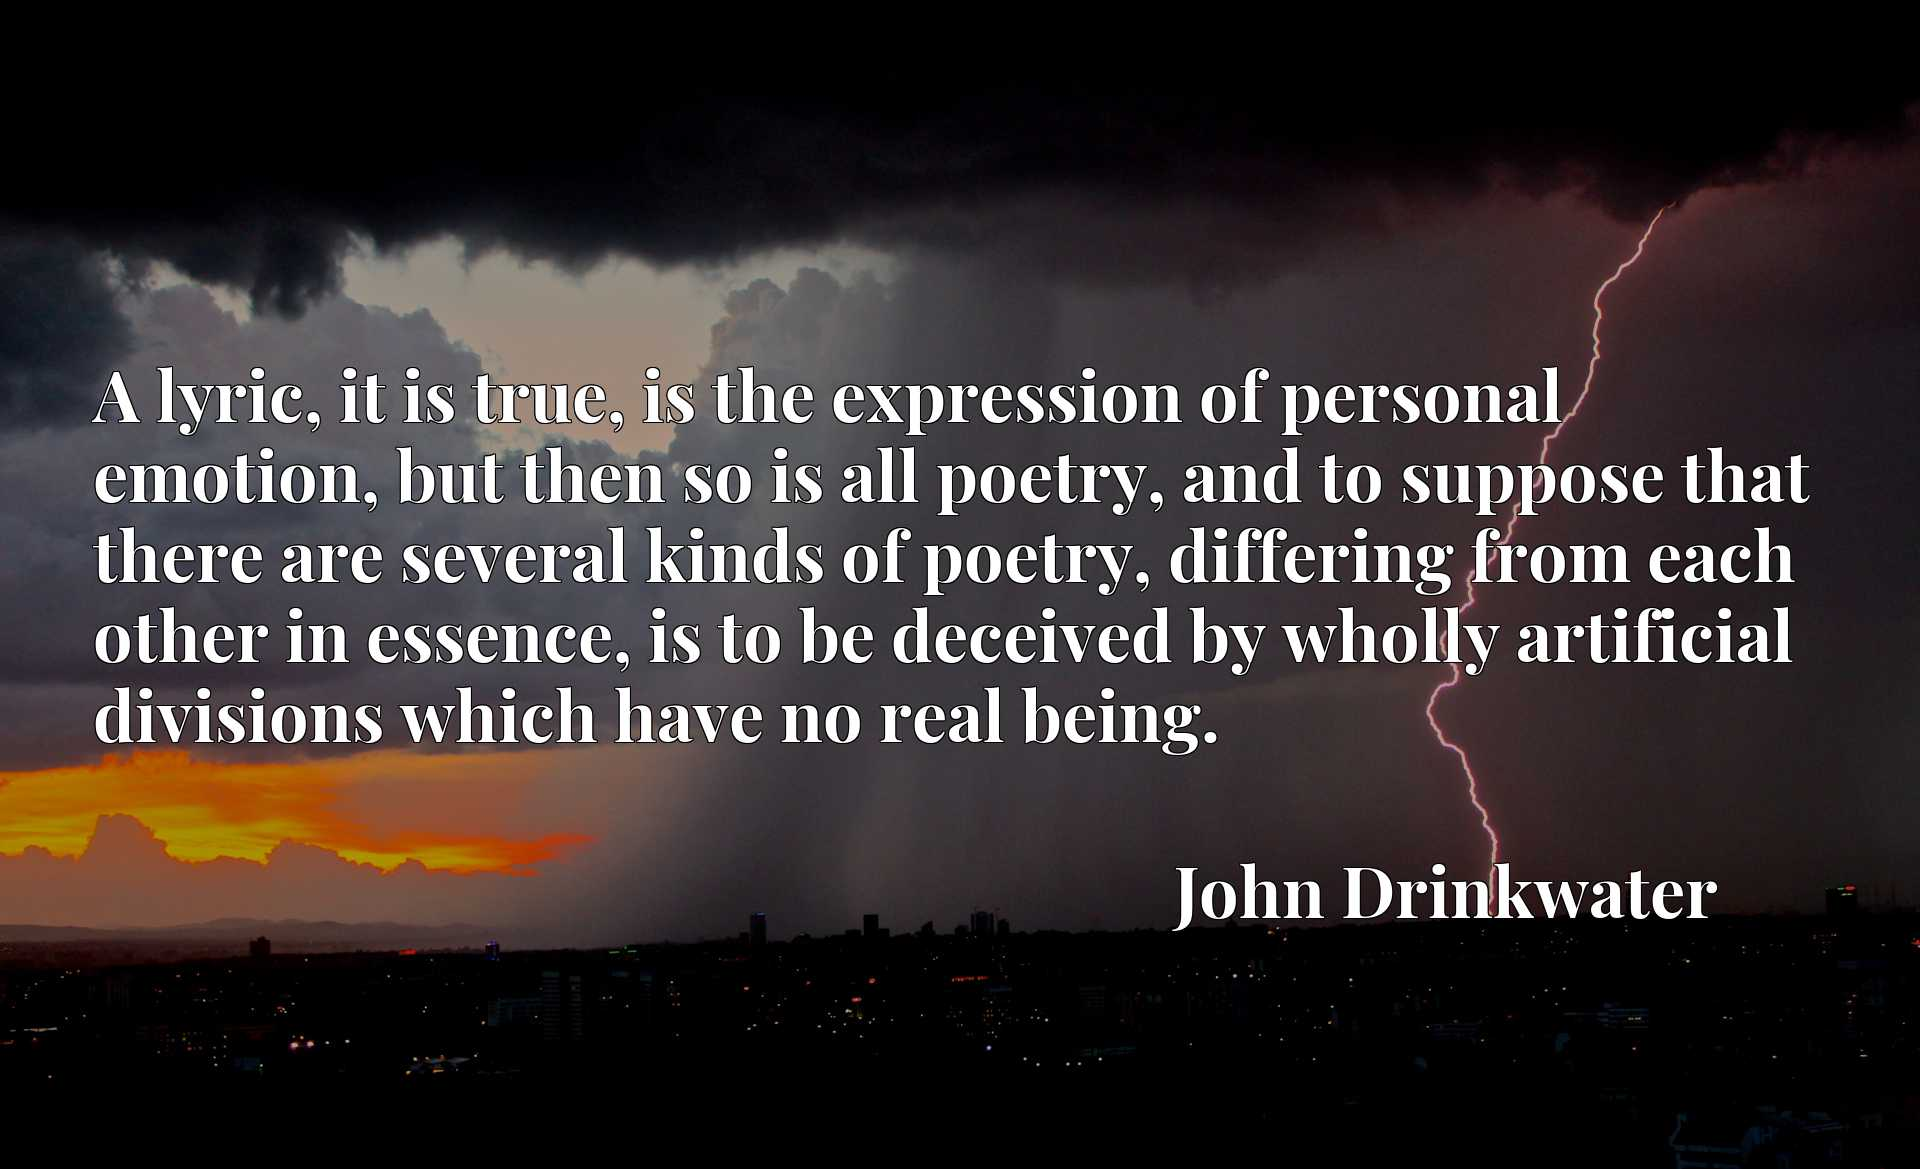 A lyric, it is true, is the expression of personal emotion, but then so is all poetry, and to suppose that there are several kinds of poetry, differing from each other in essence, is to be deceived by wholly artificial divisions which have no real being.